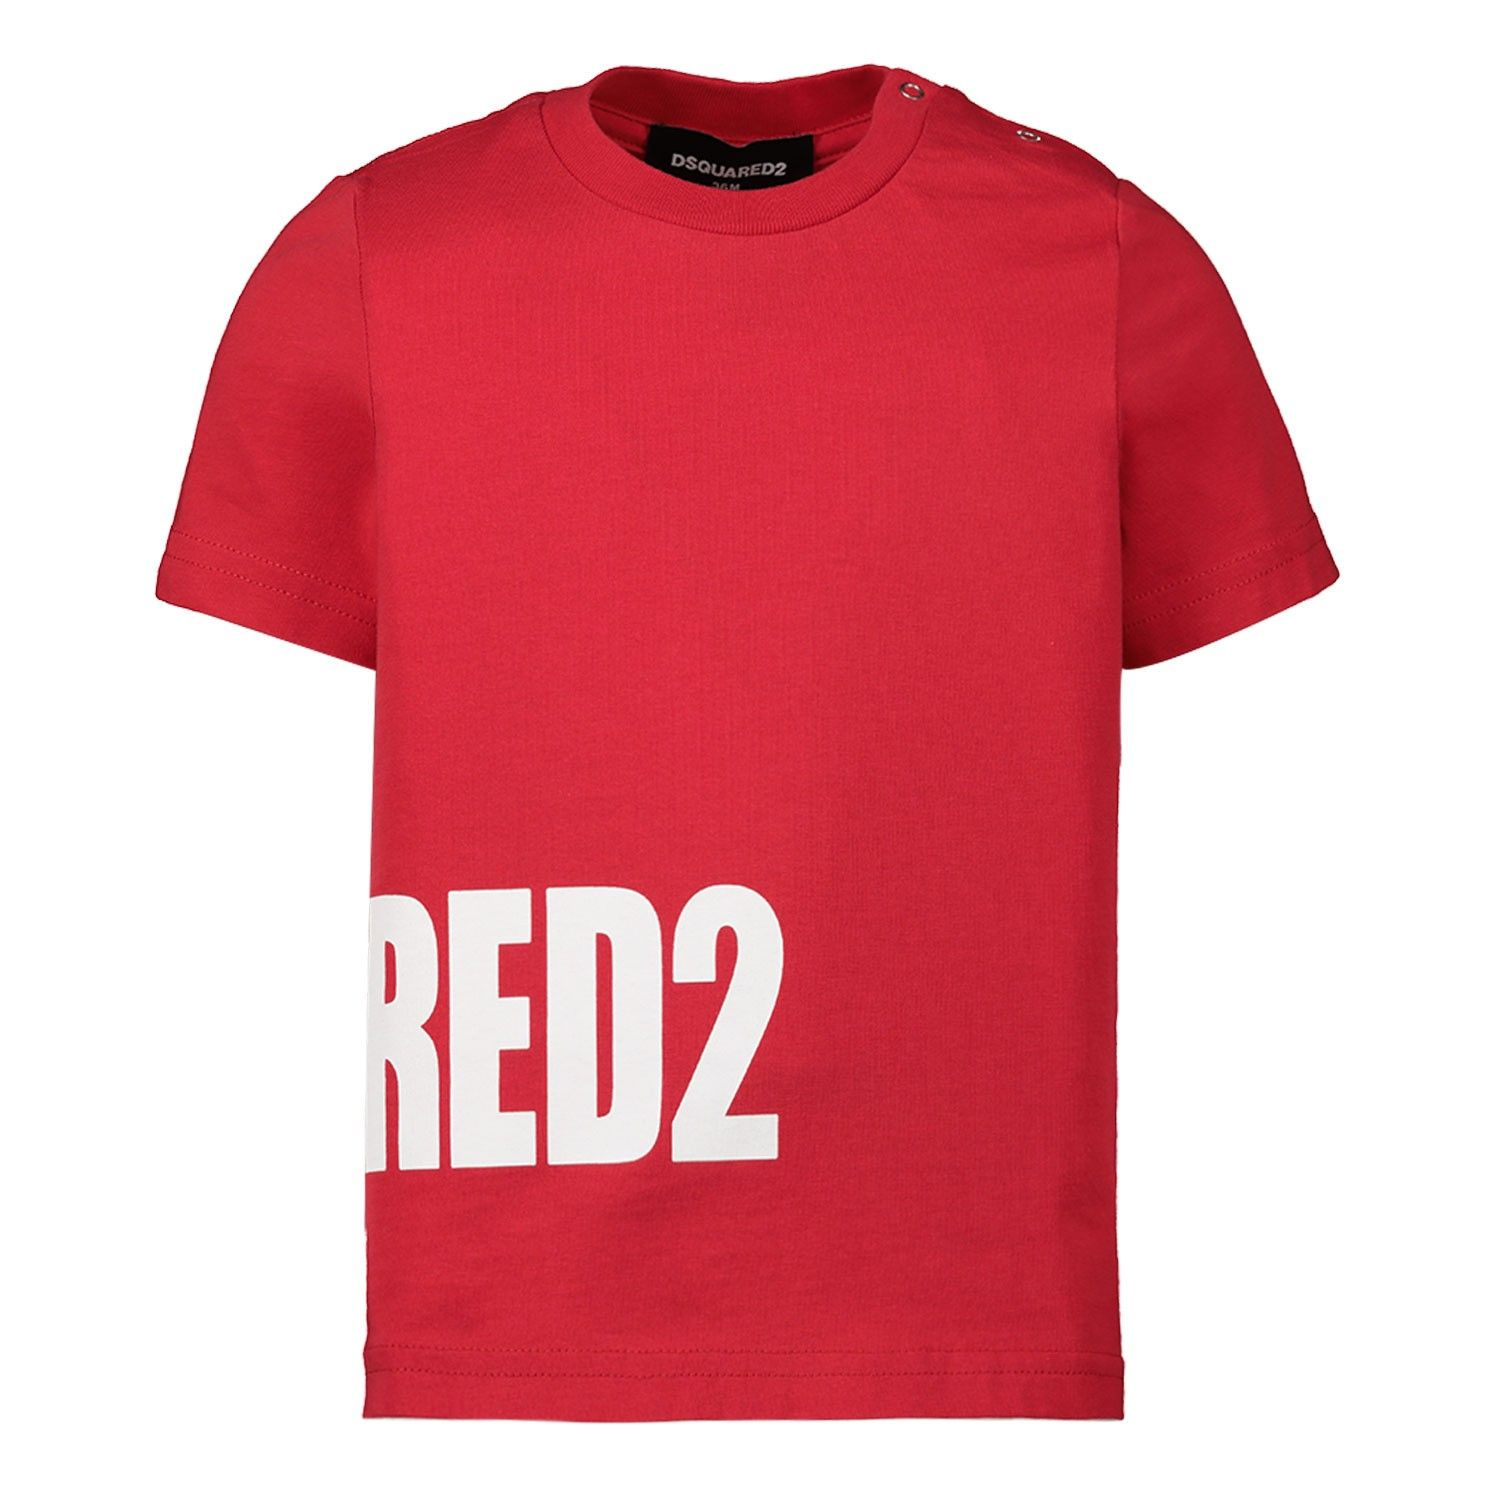 Picture of Dsquared2 DQ040Y baby shirt red